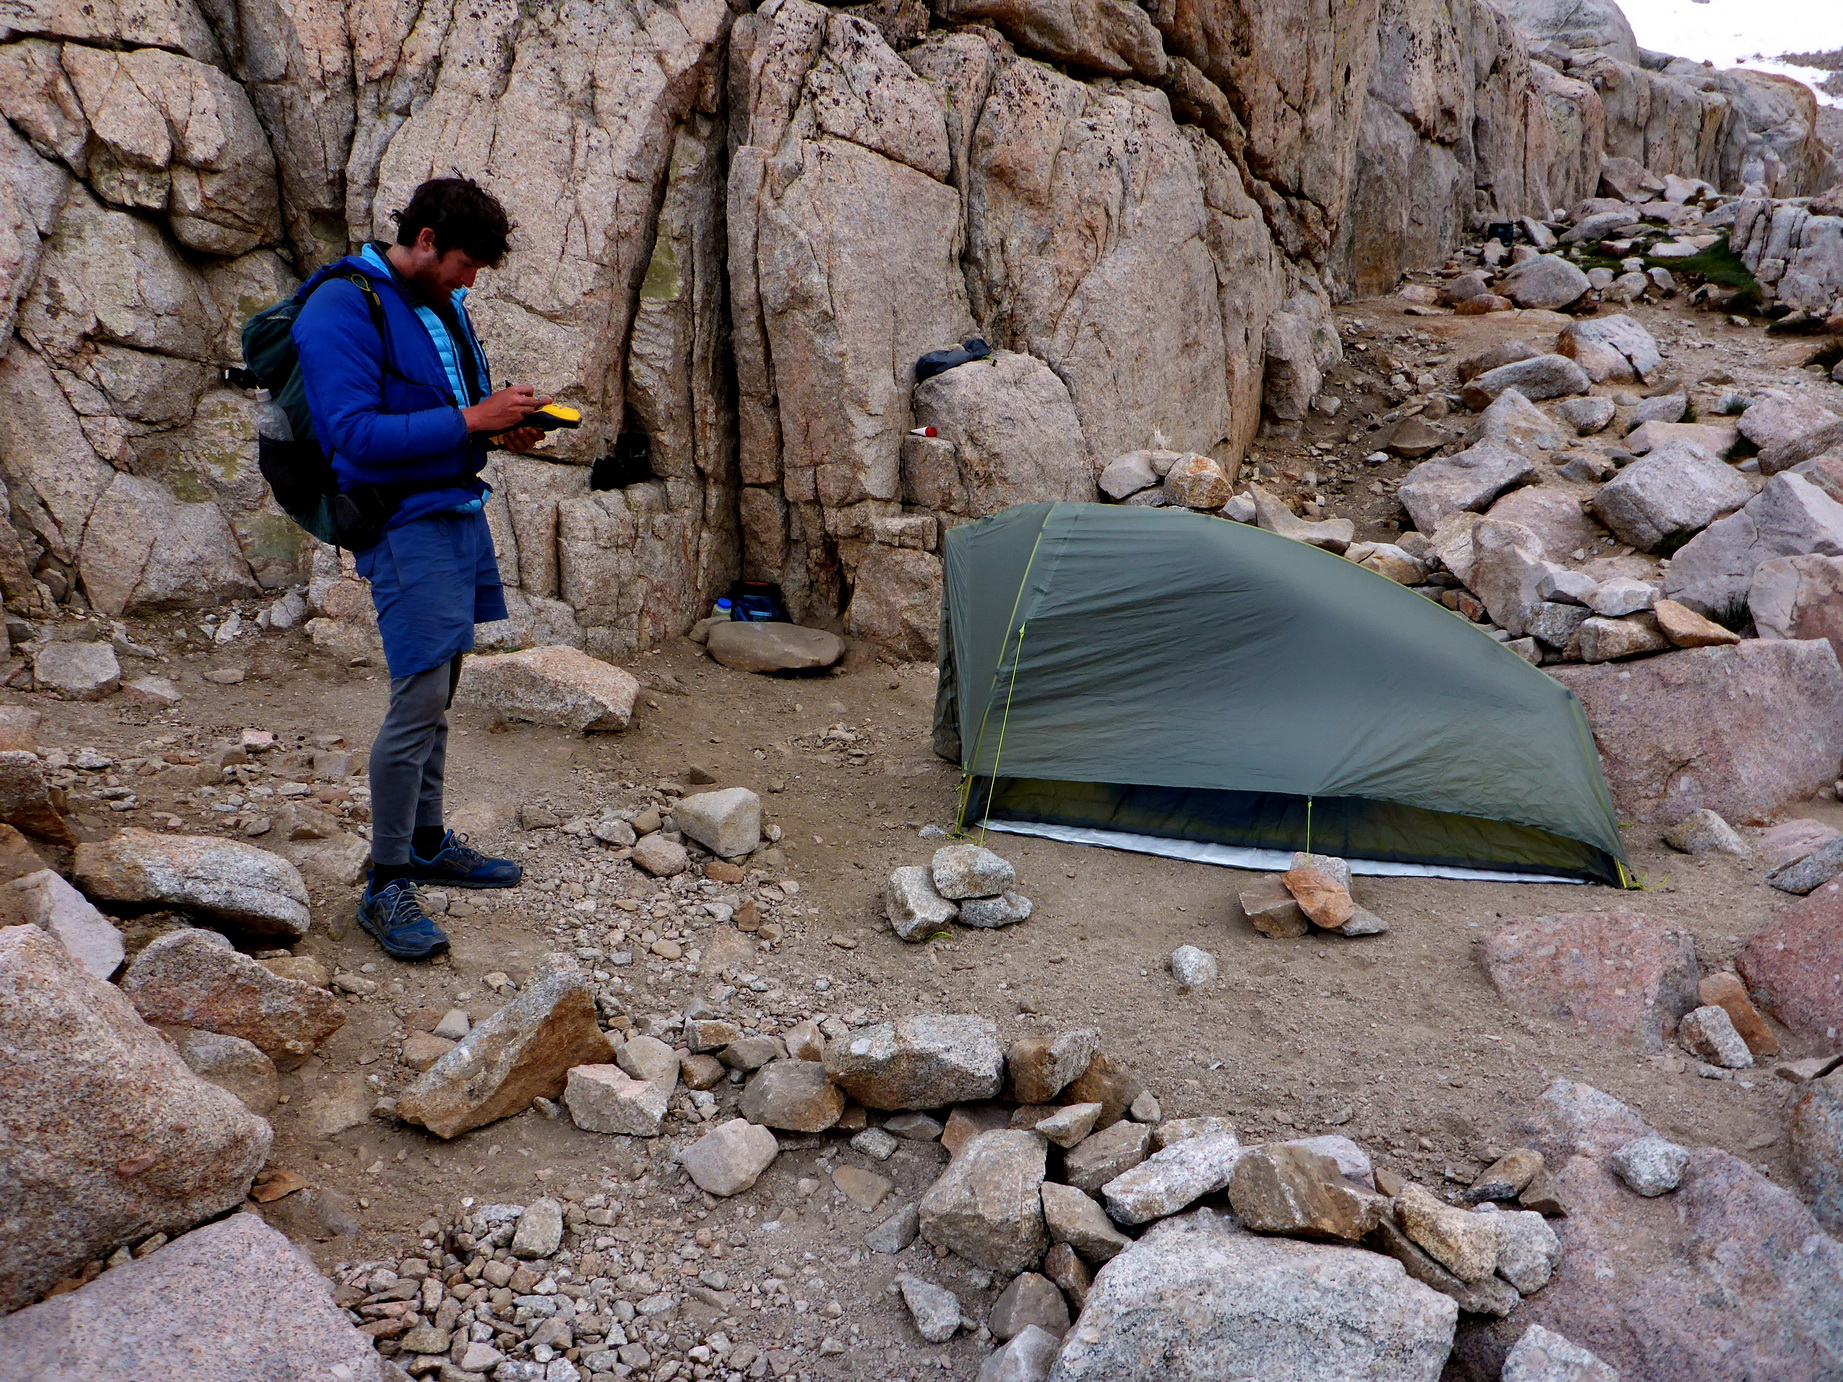 Camping Near Waterbodies in Wilderness - Sustainable Camping Management Strategies